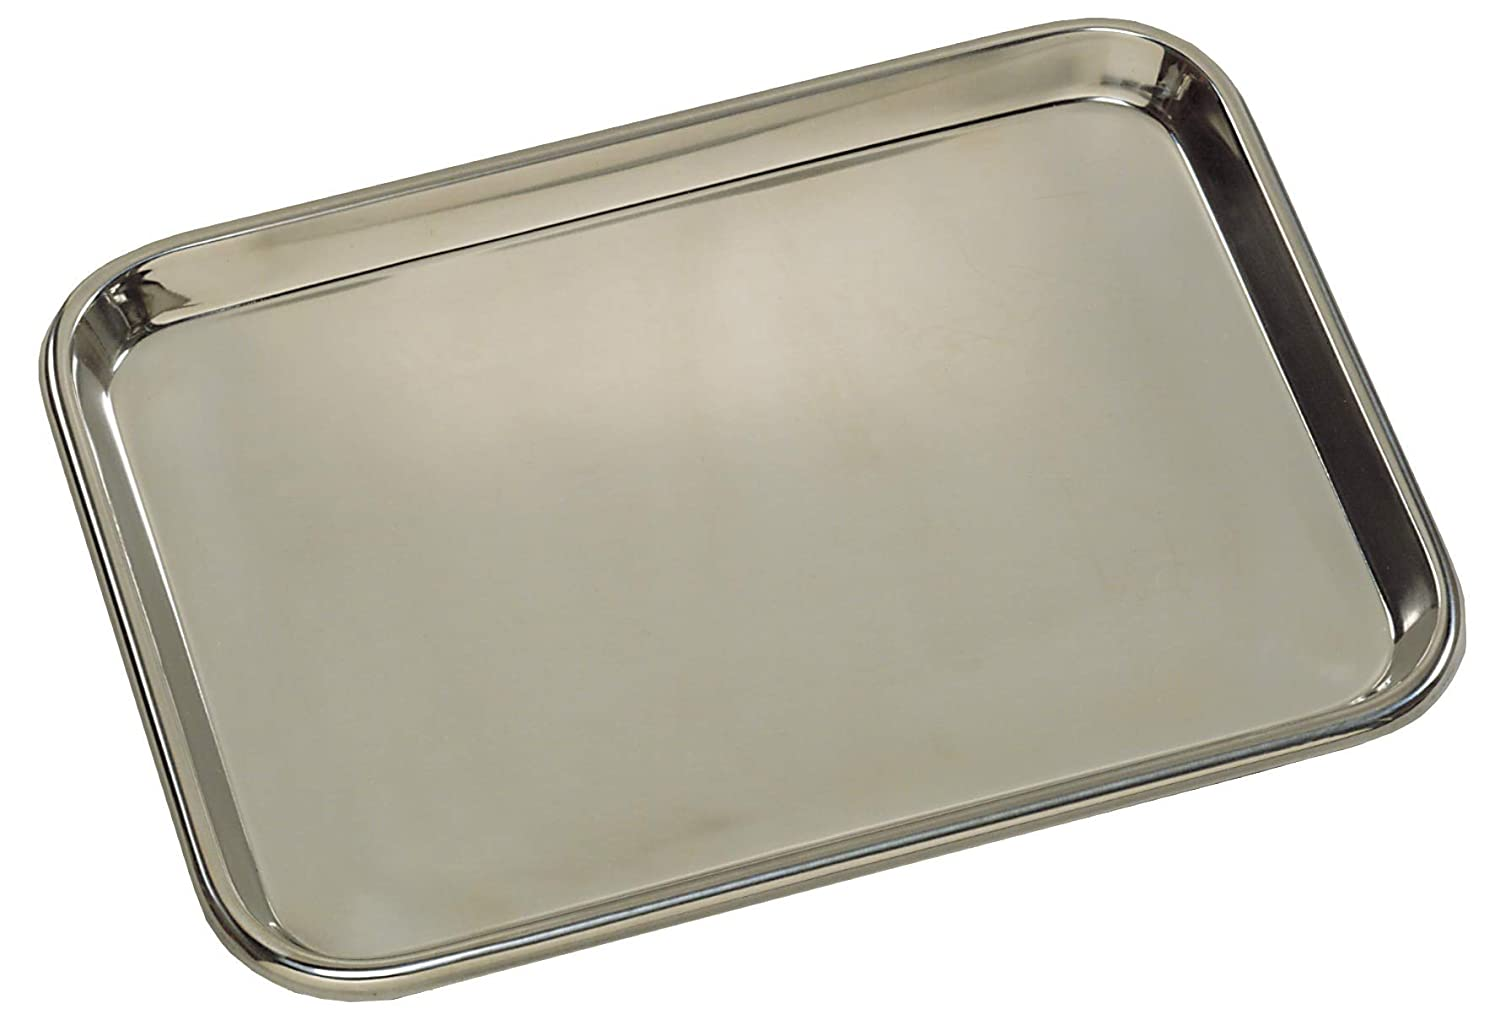 Grafco Metal Mayo Tray for Medical Instruments, Dental, Tattoo and Surgical Supplies, Stainless Steel, 13-5/8